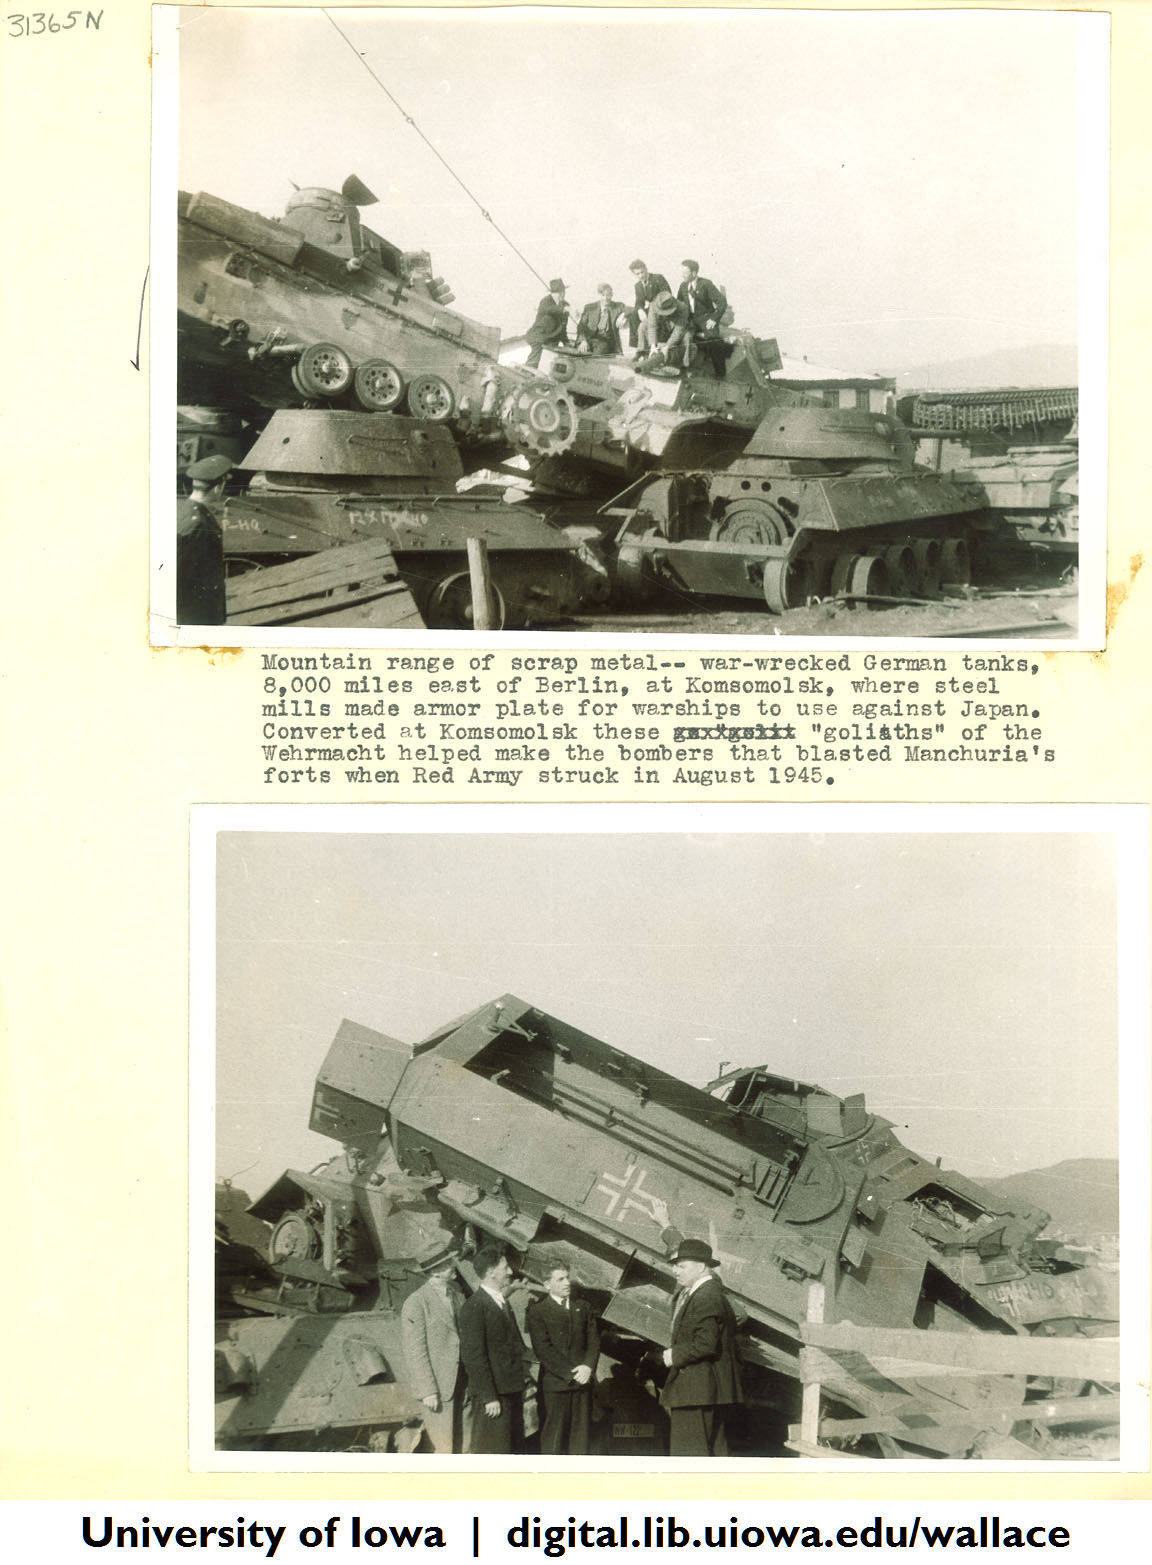 Warwrecked-German-tanks-turned-scrap-metal-Siberia-1944